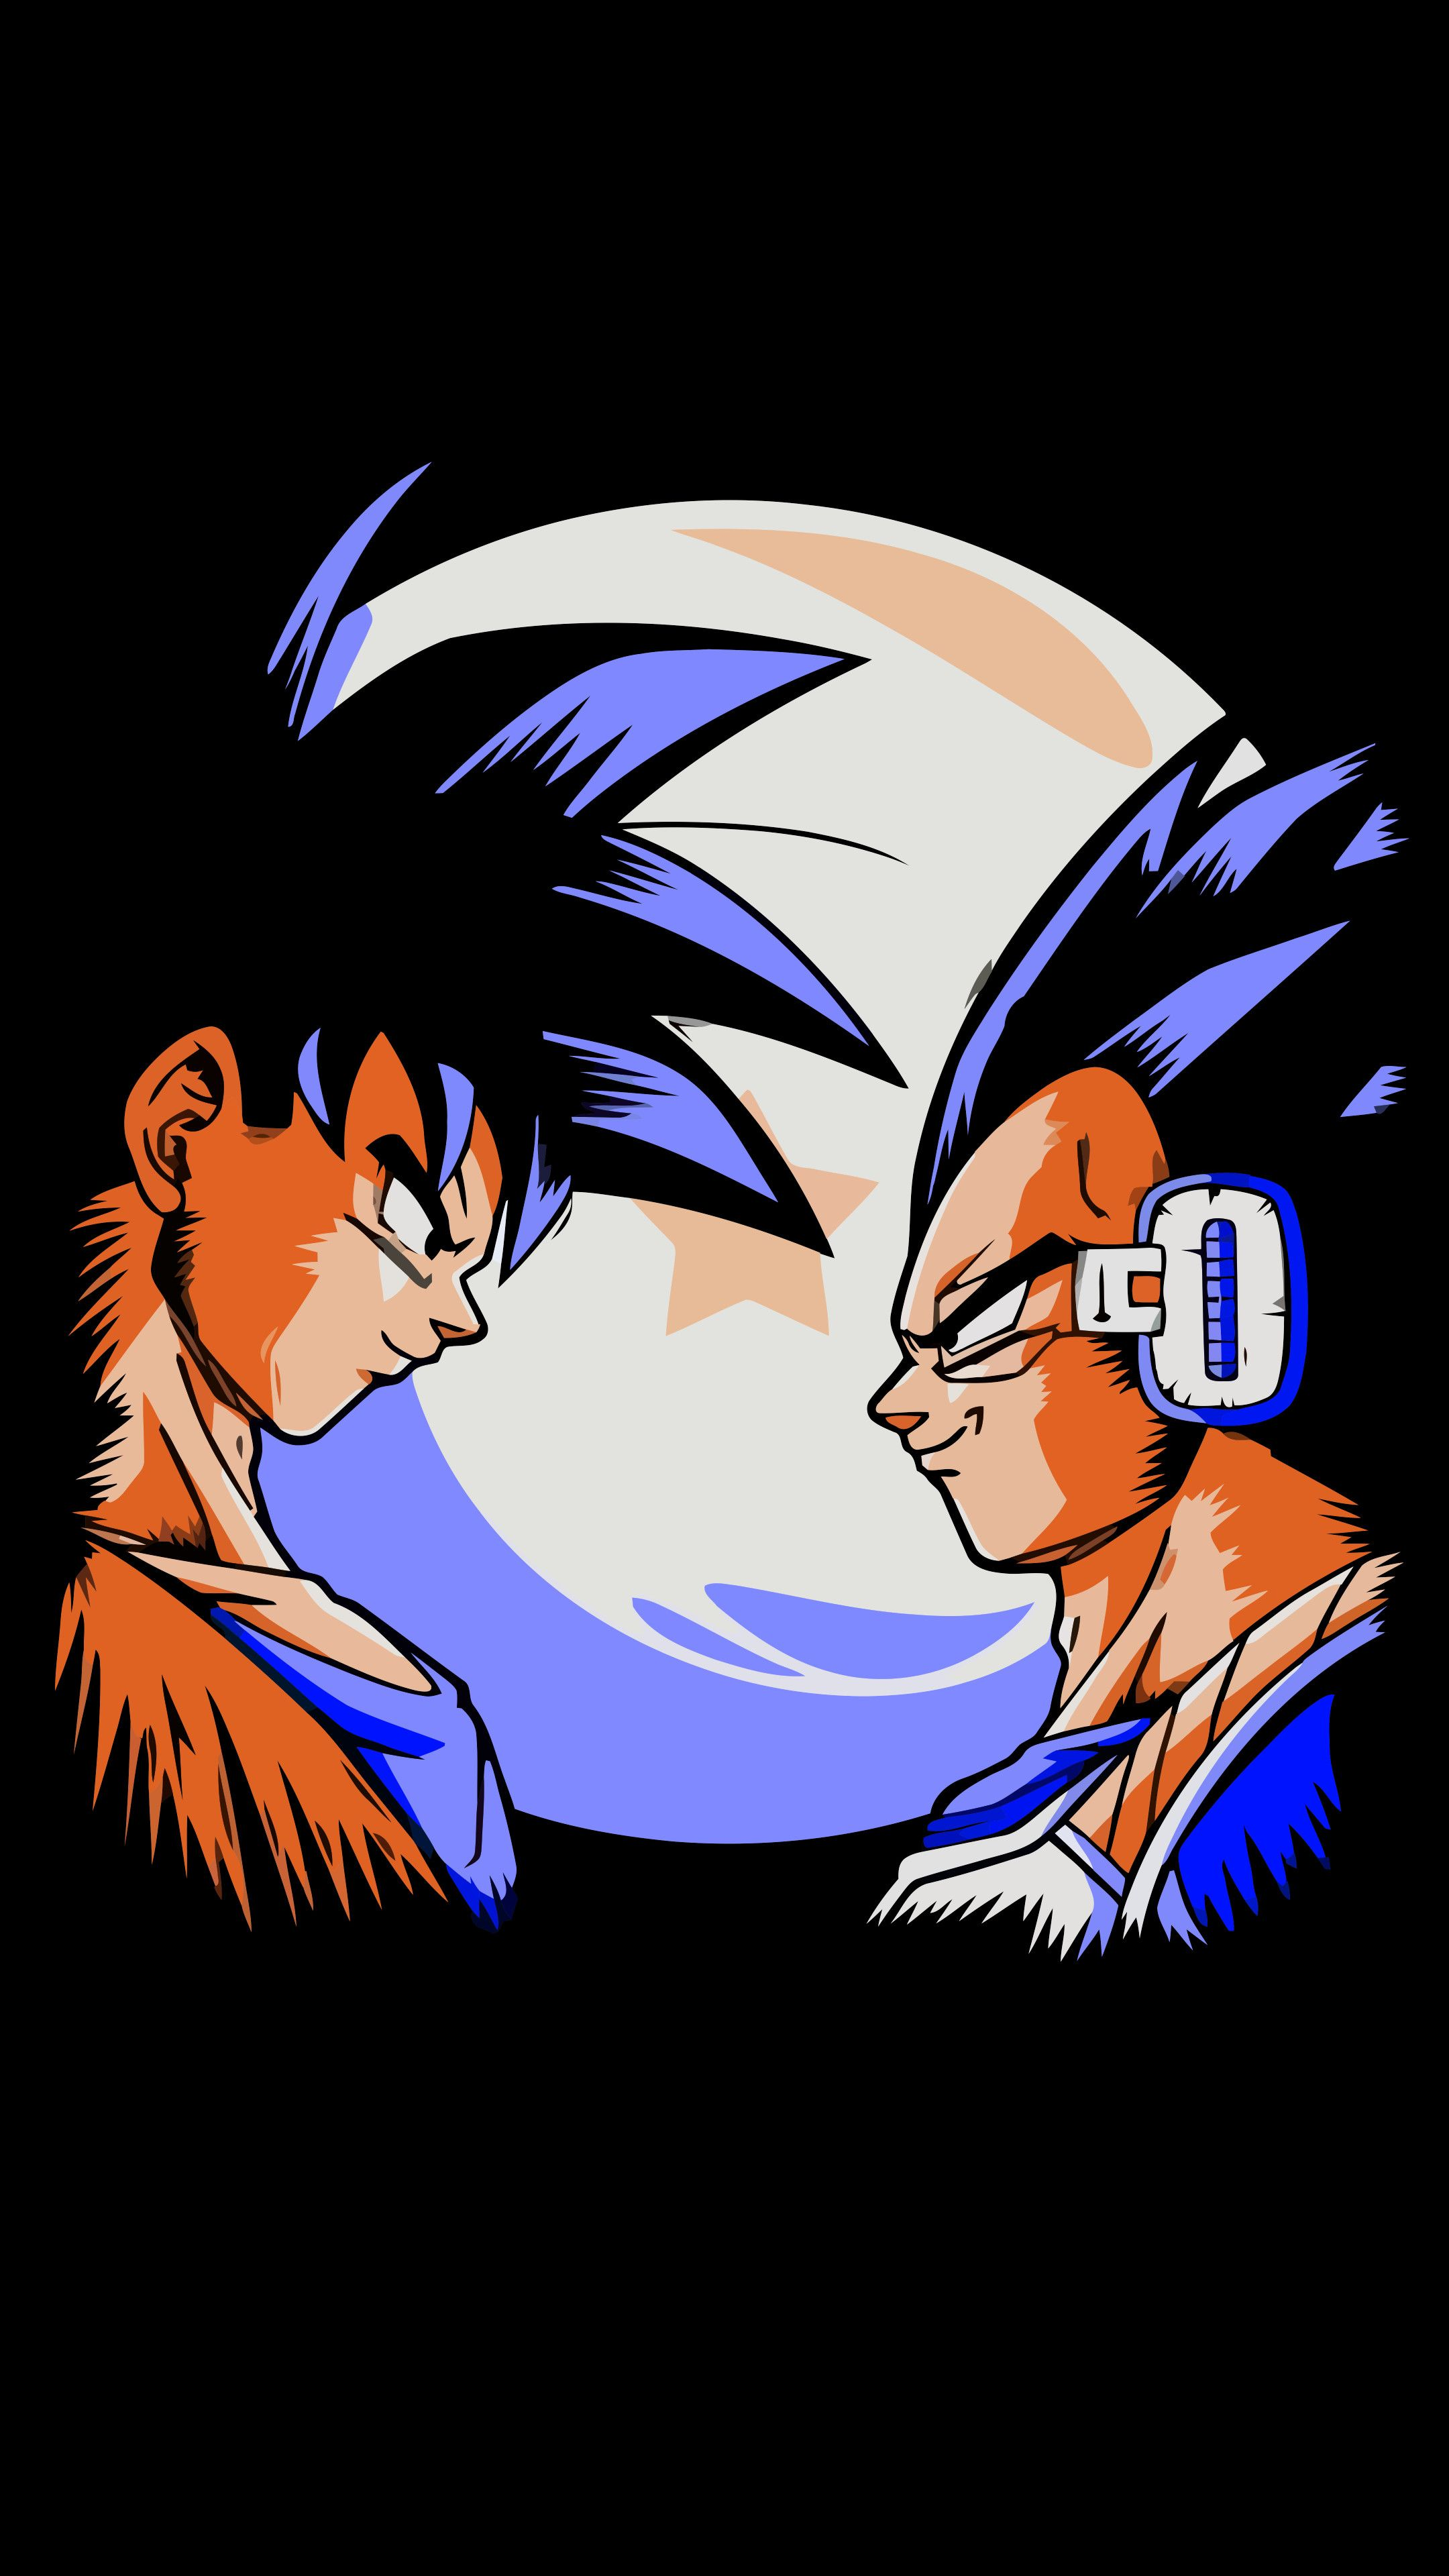 Dbz Iphone Wallpapers Top Free Dbz Iphone Backgrounds Wallpaperaccess